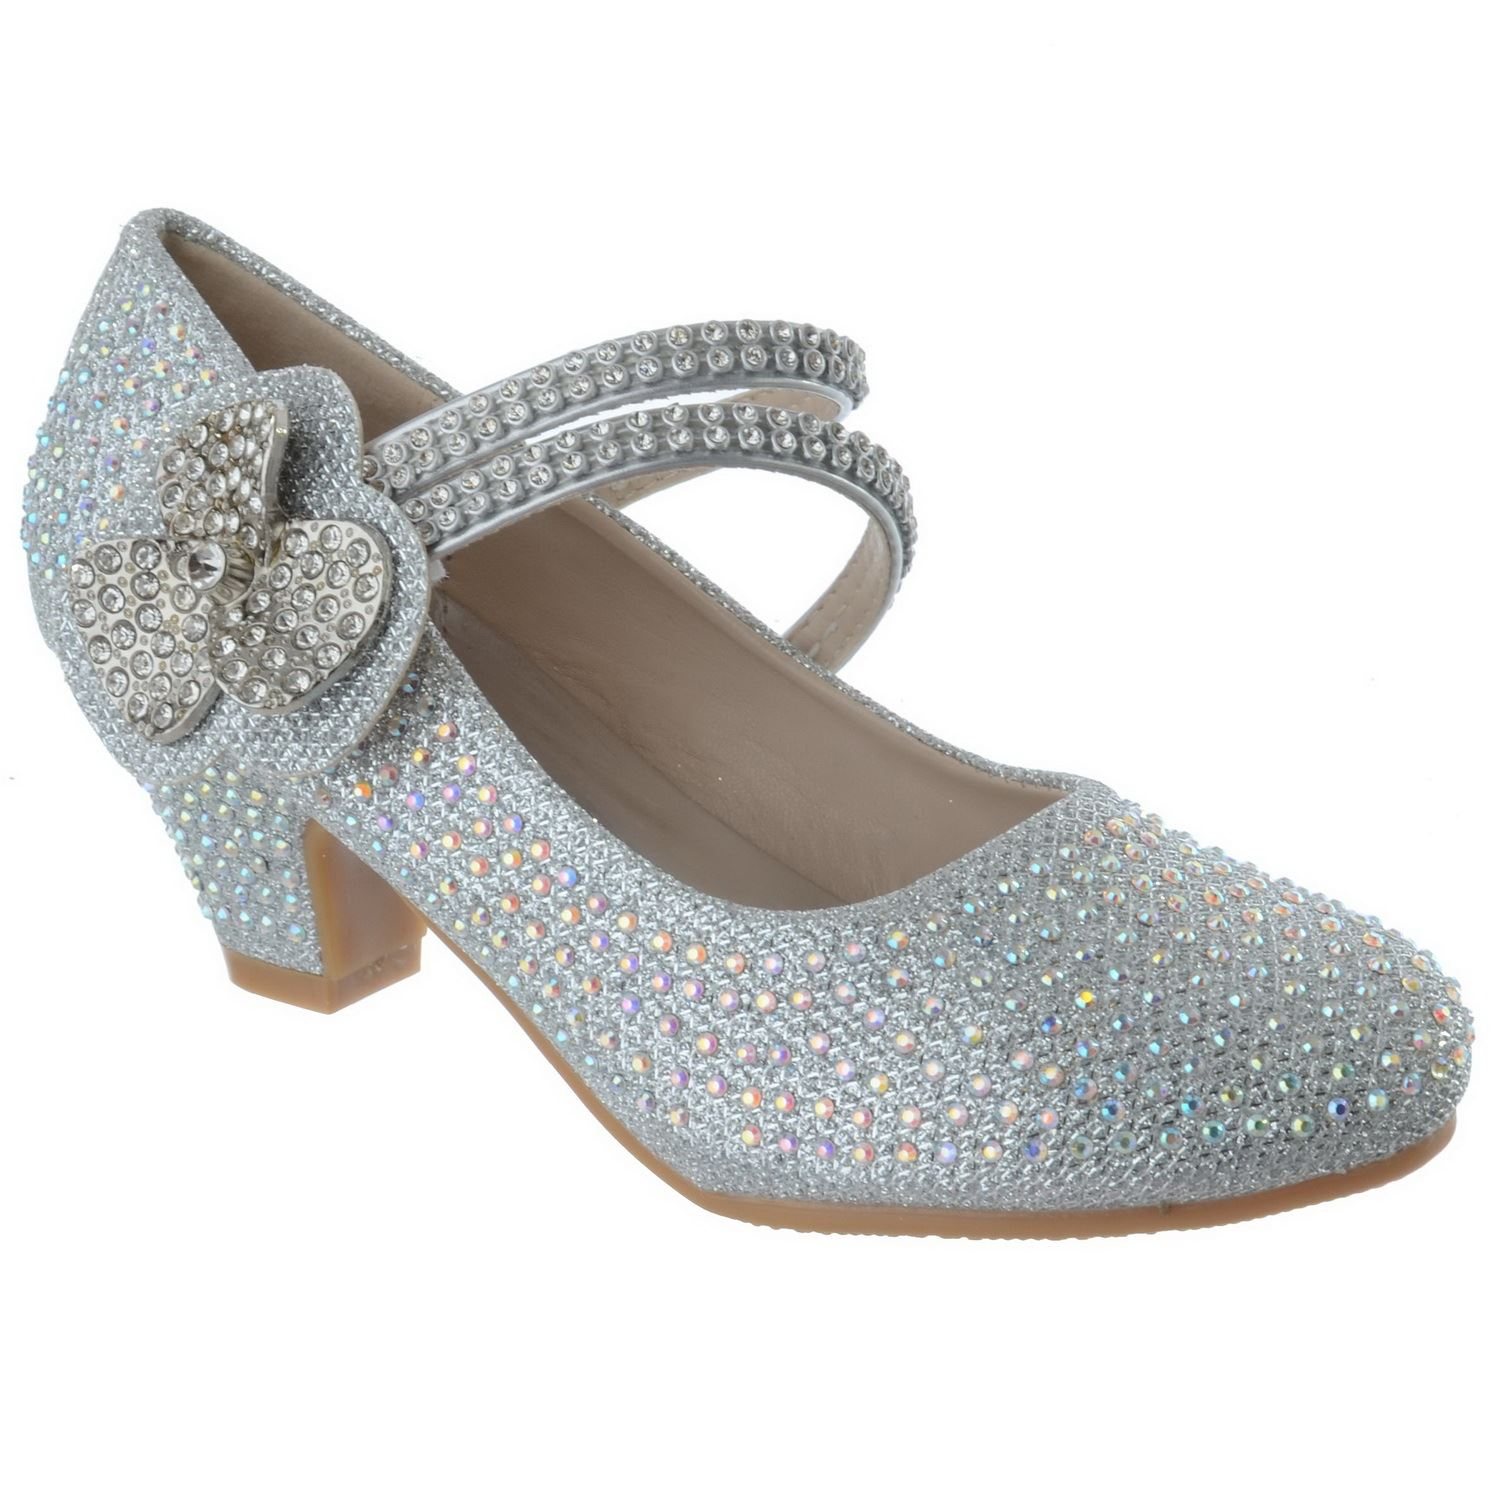 GIRLS KIDS CHILDRENS LOW HEEL PARTY WEDDING DIAMANTE STYLE SANDALS SHOES SIZE